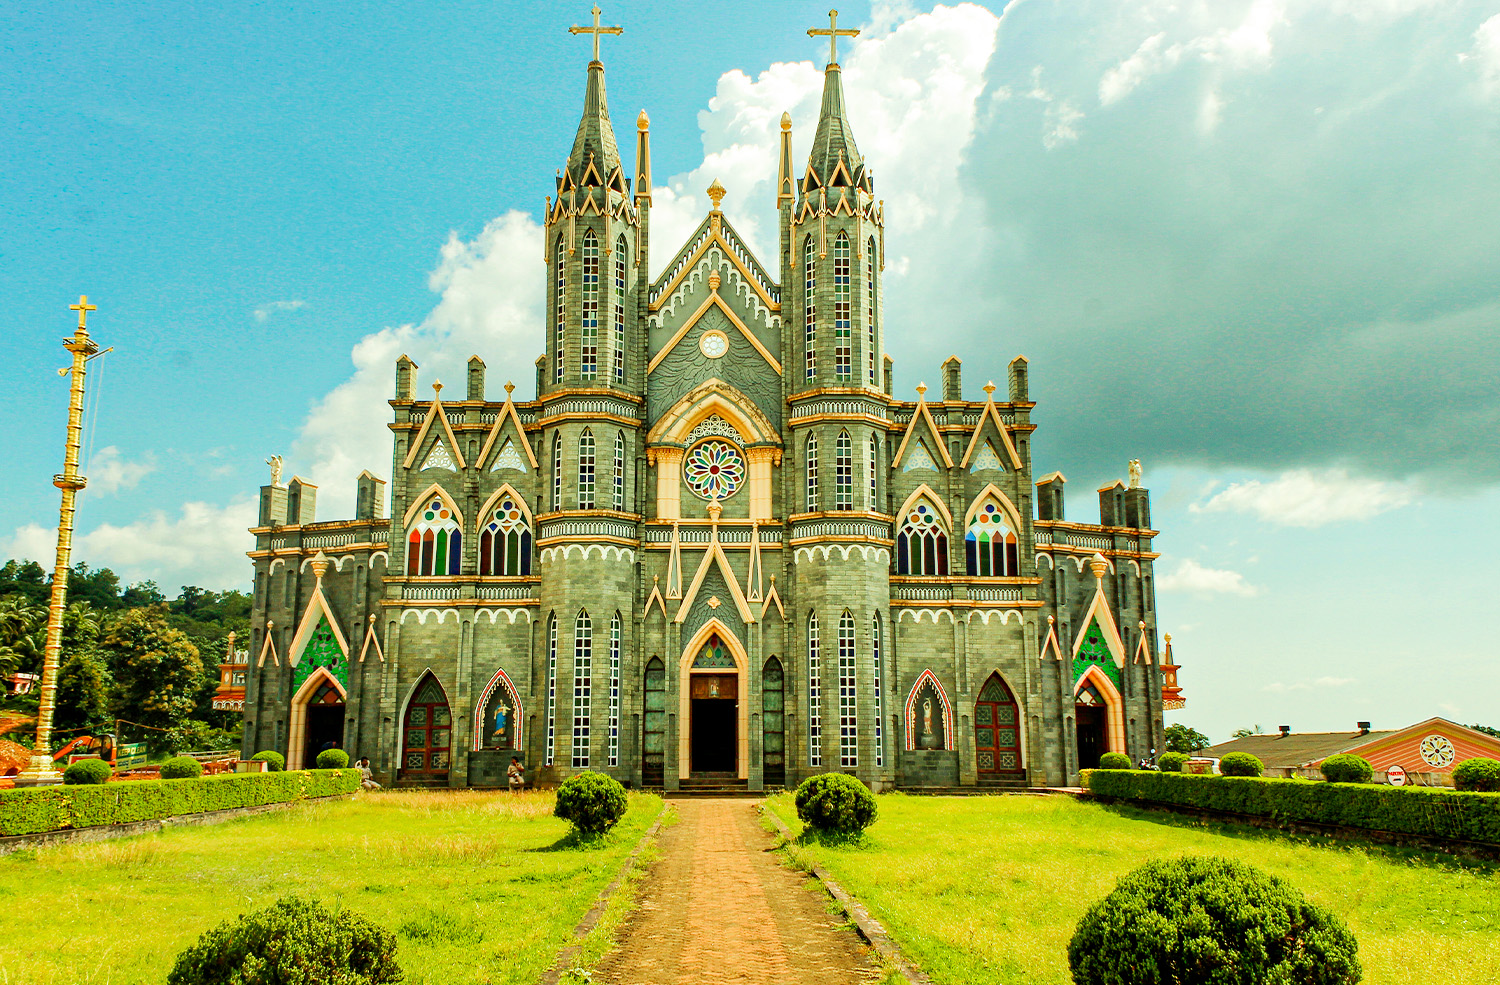 St.Lawrence Cathedral Karkala